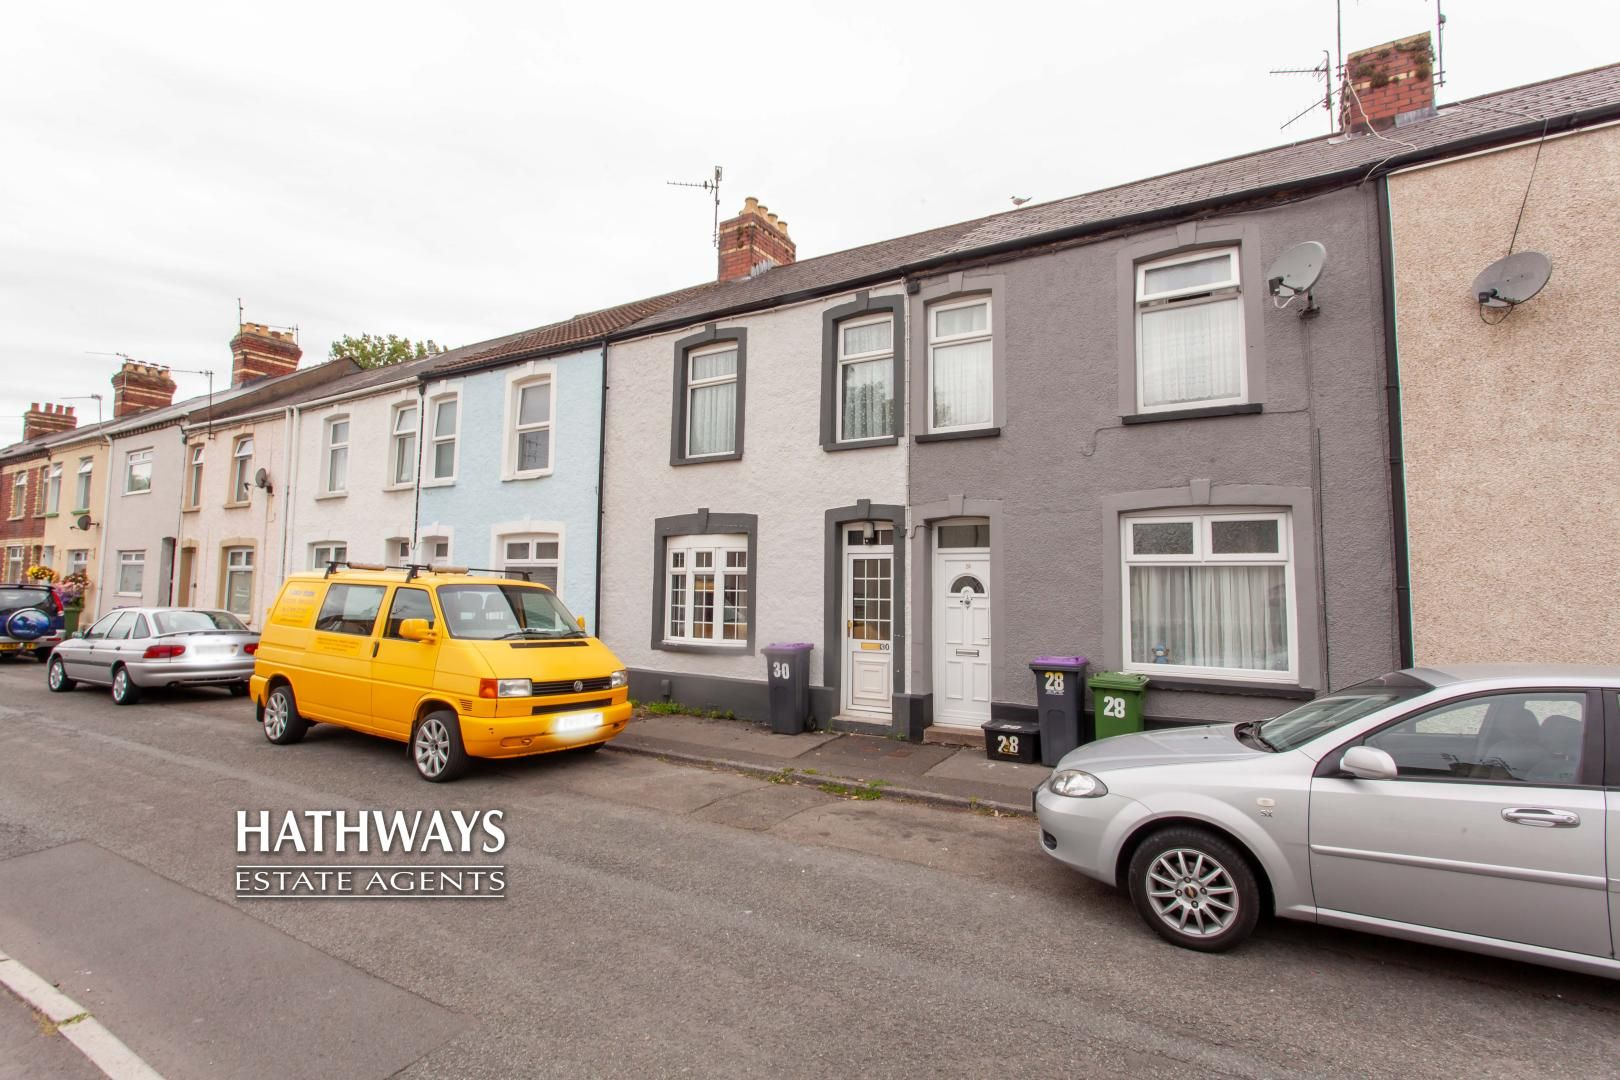 3 bed house for sale in Star Street - Property Image 1